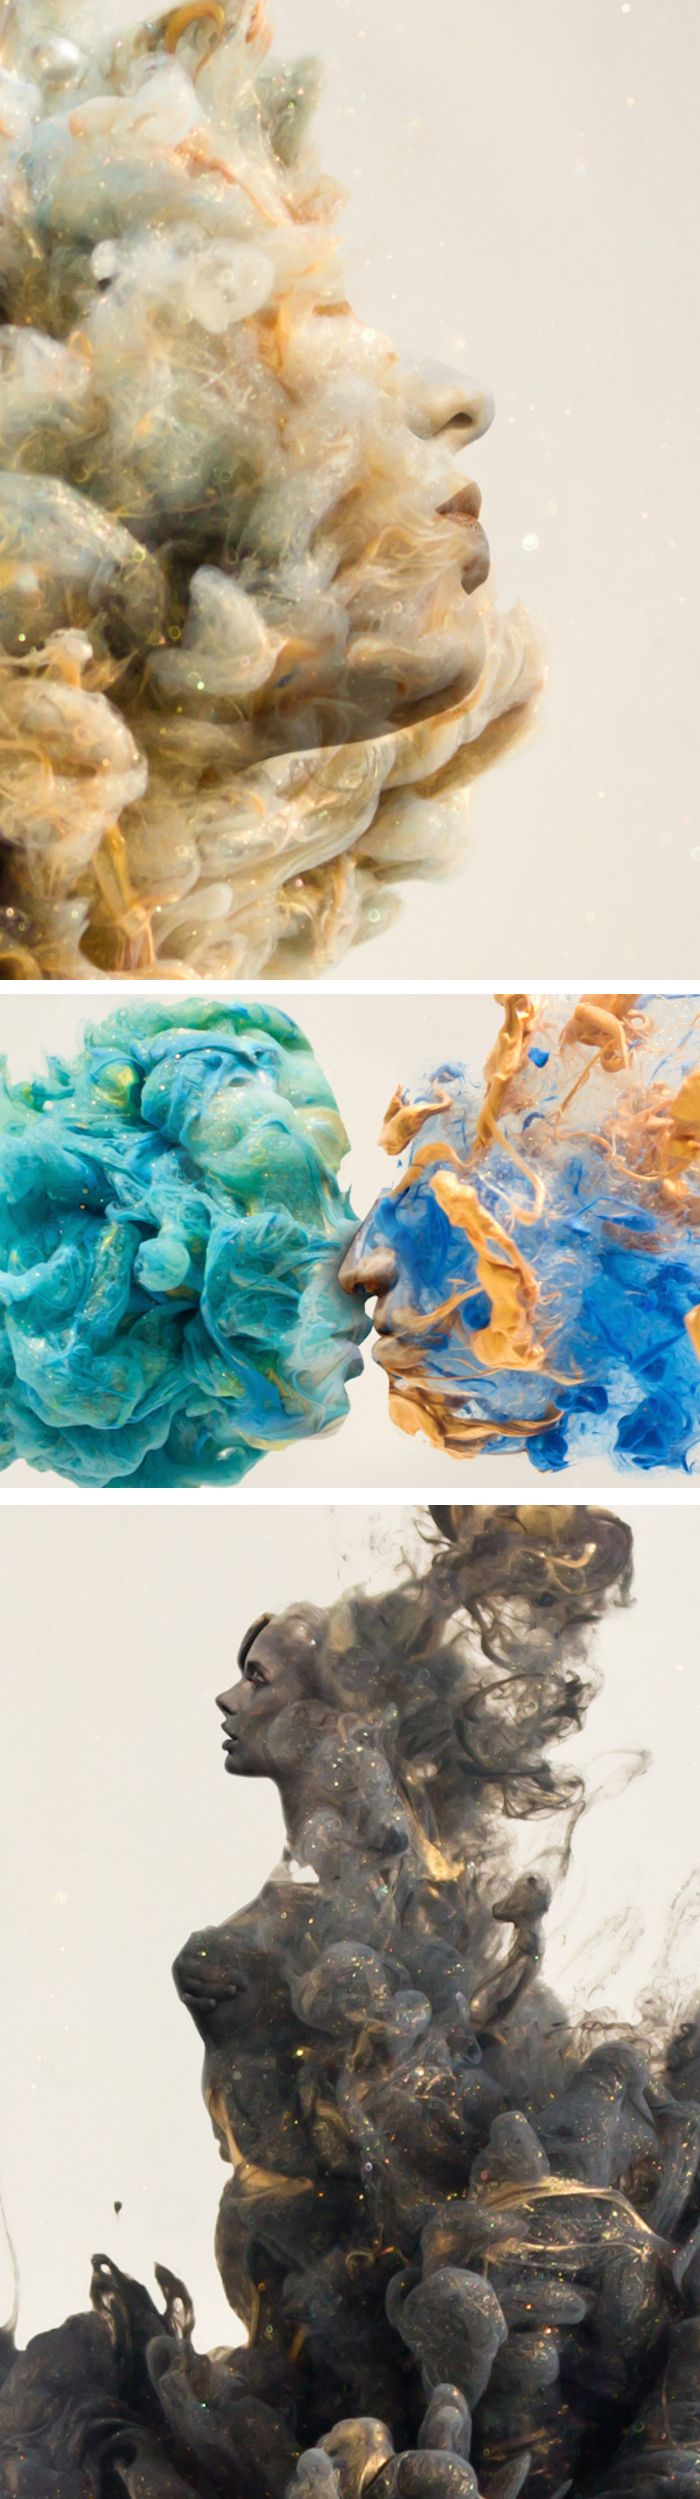 Portraits in Swirls of Paint / Chris Slabber (this made me swoon)